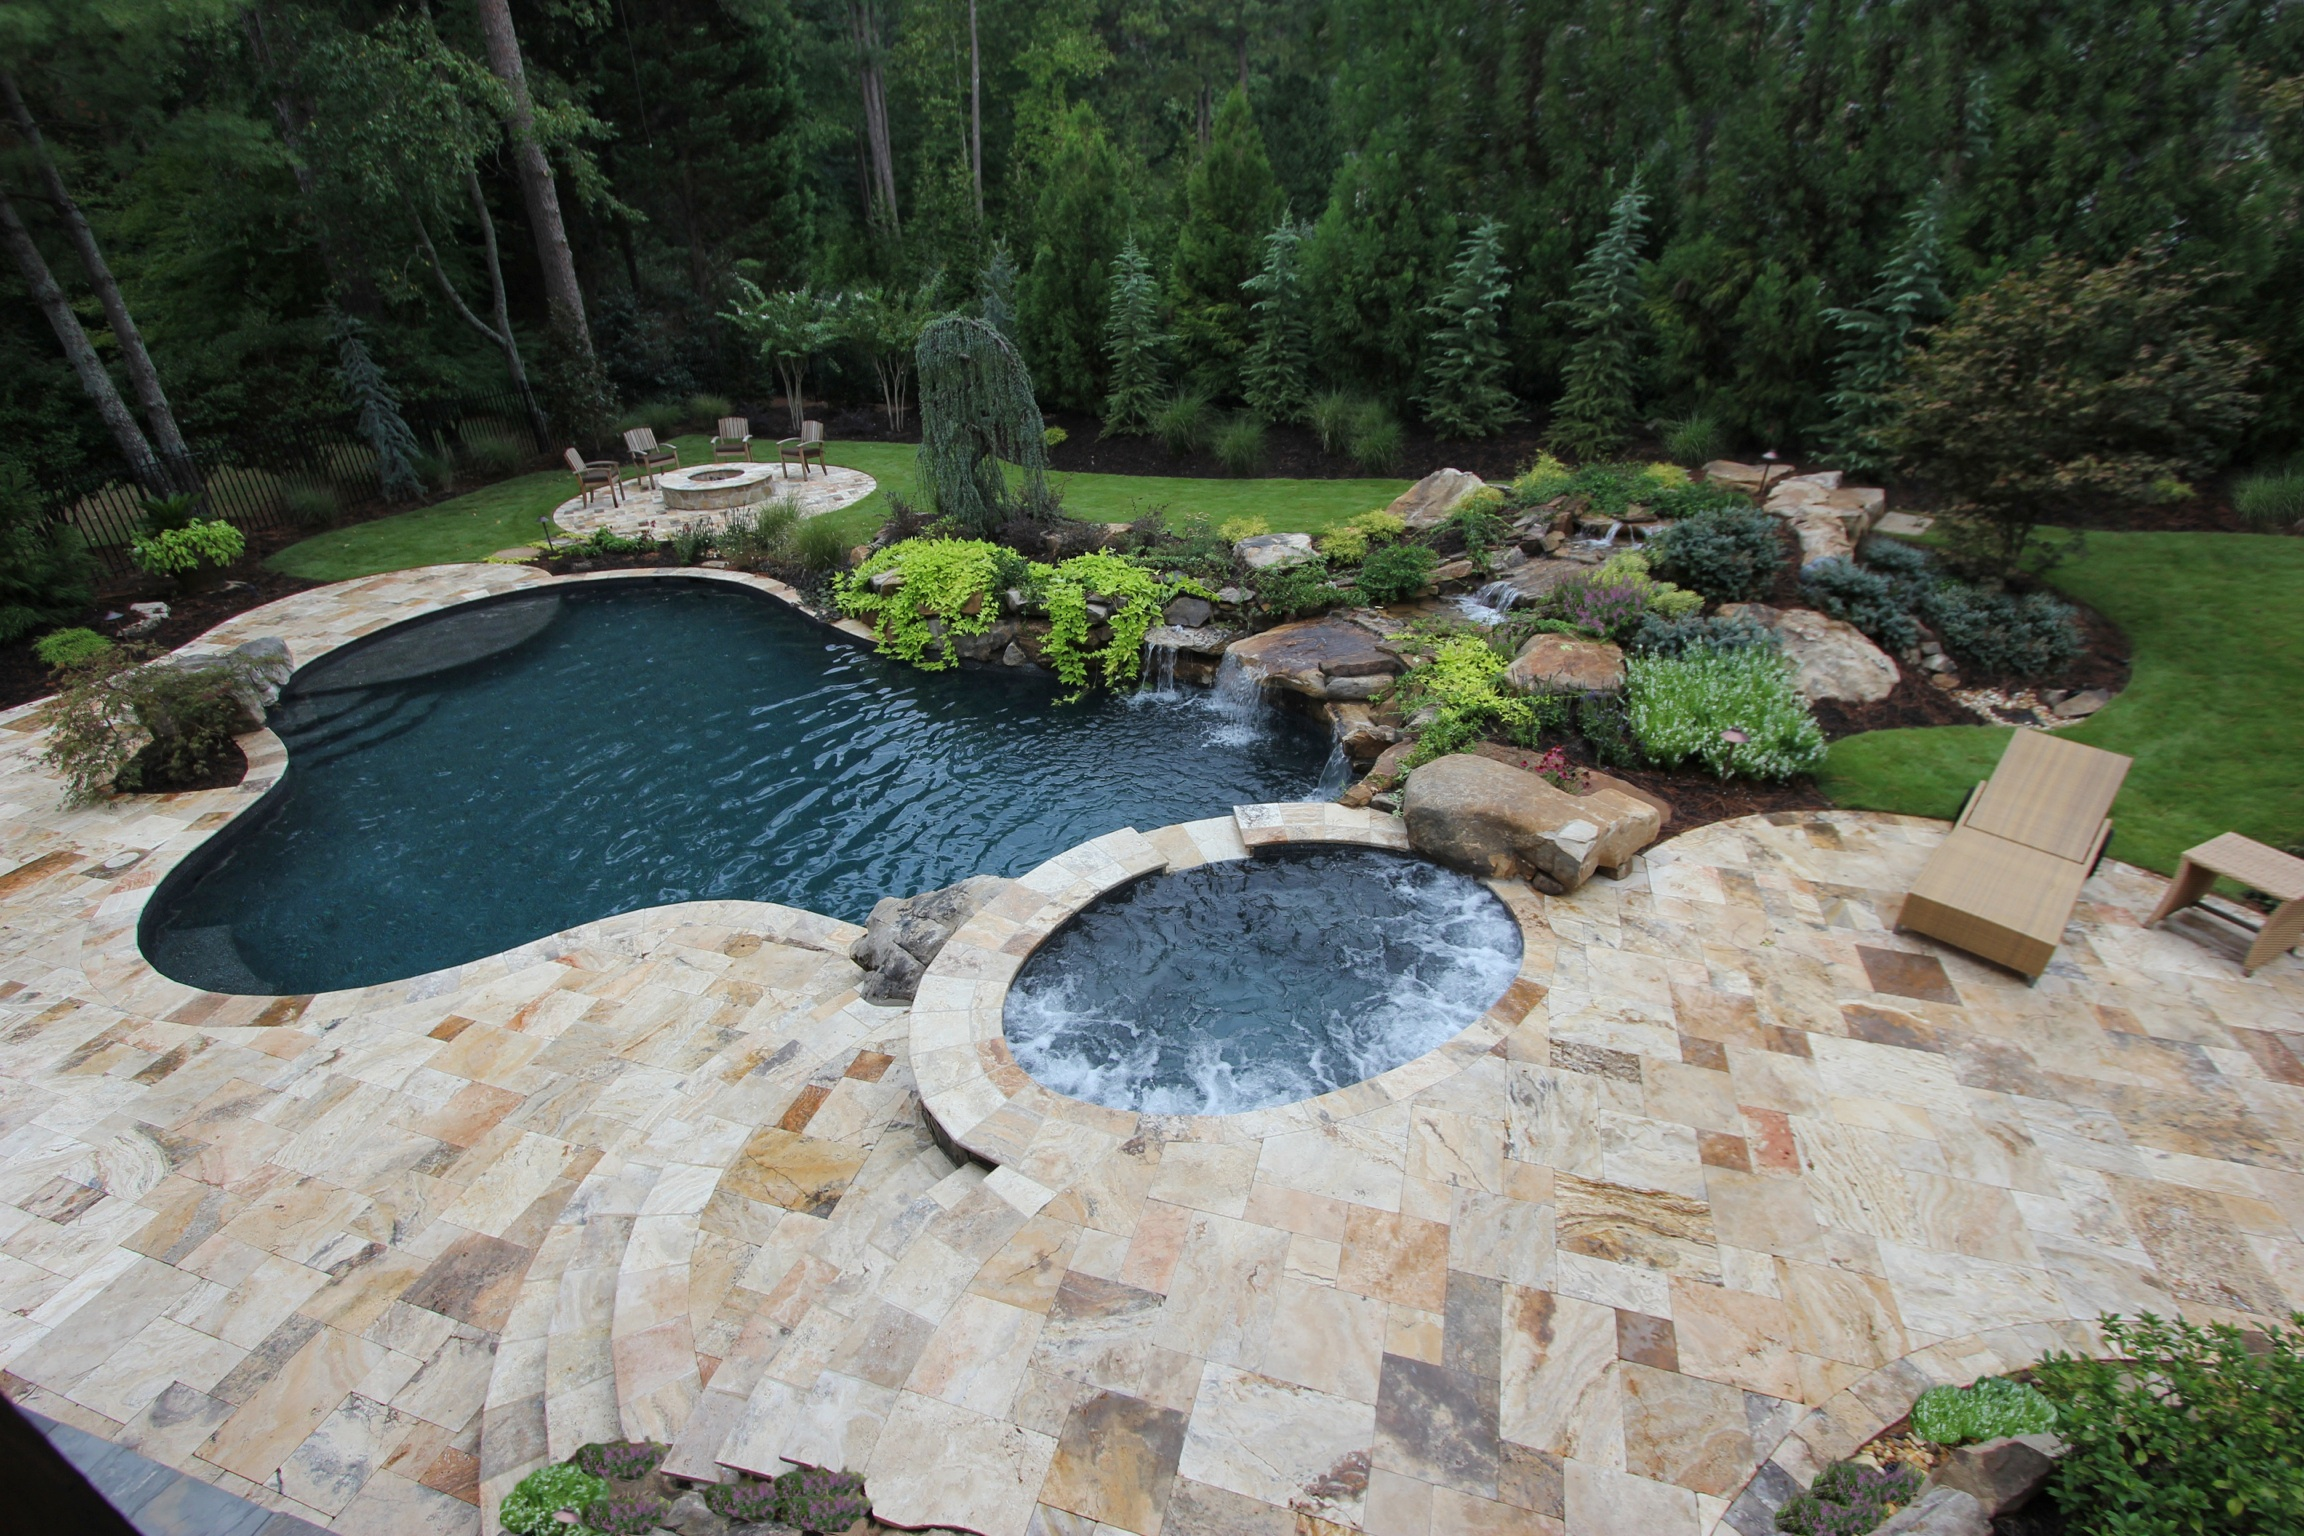 travertine patio pavers - home design ideas and pictures